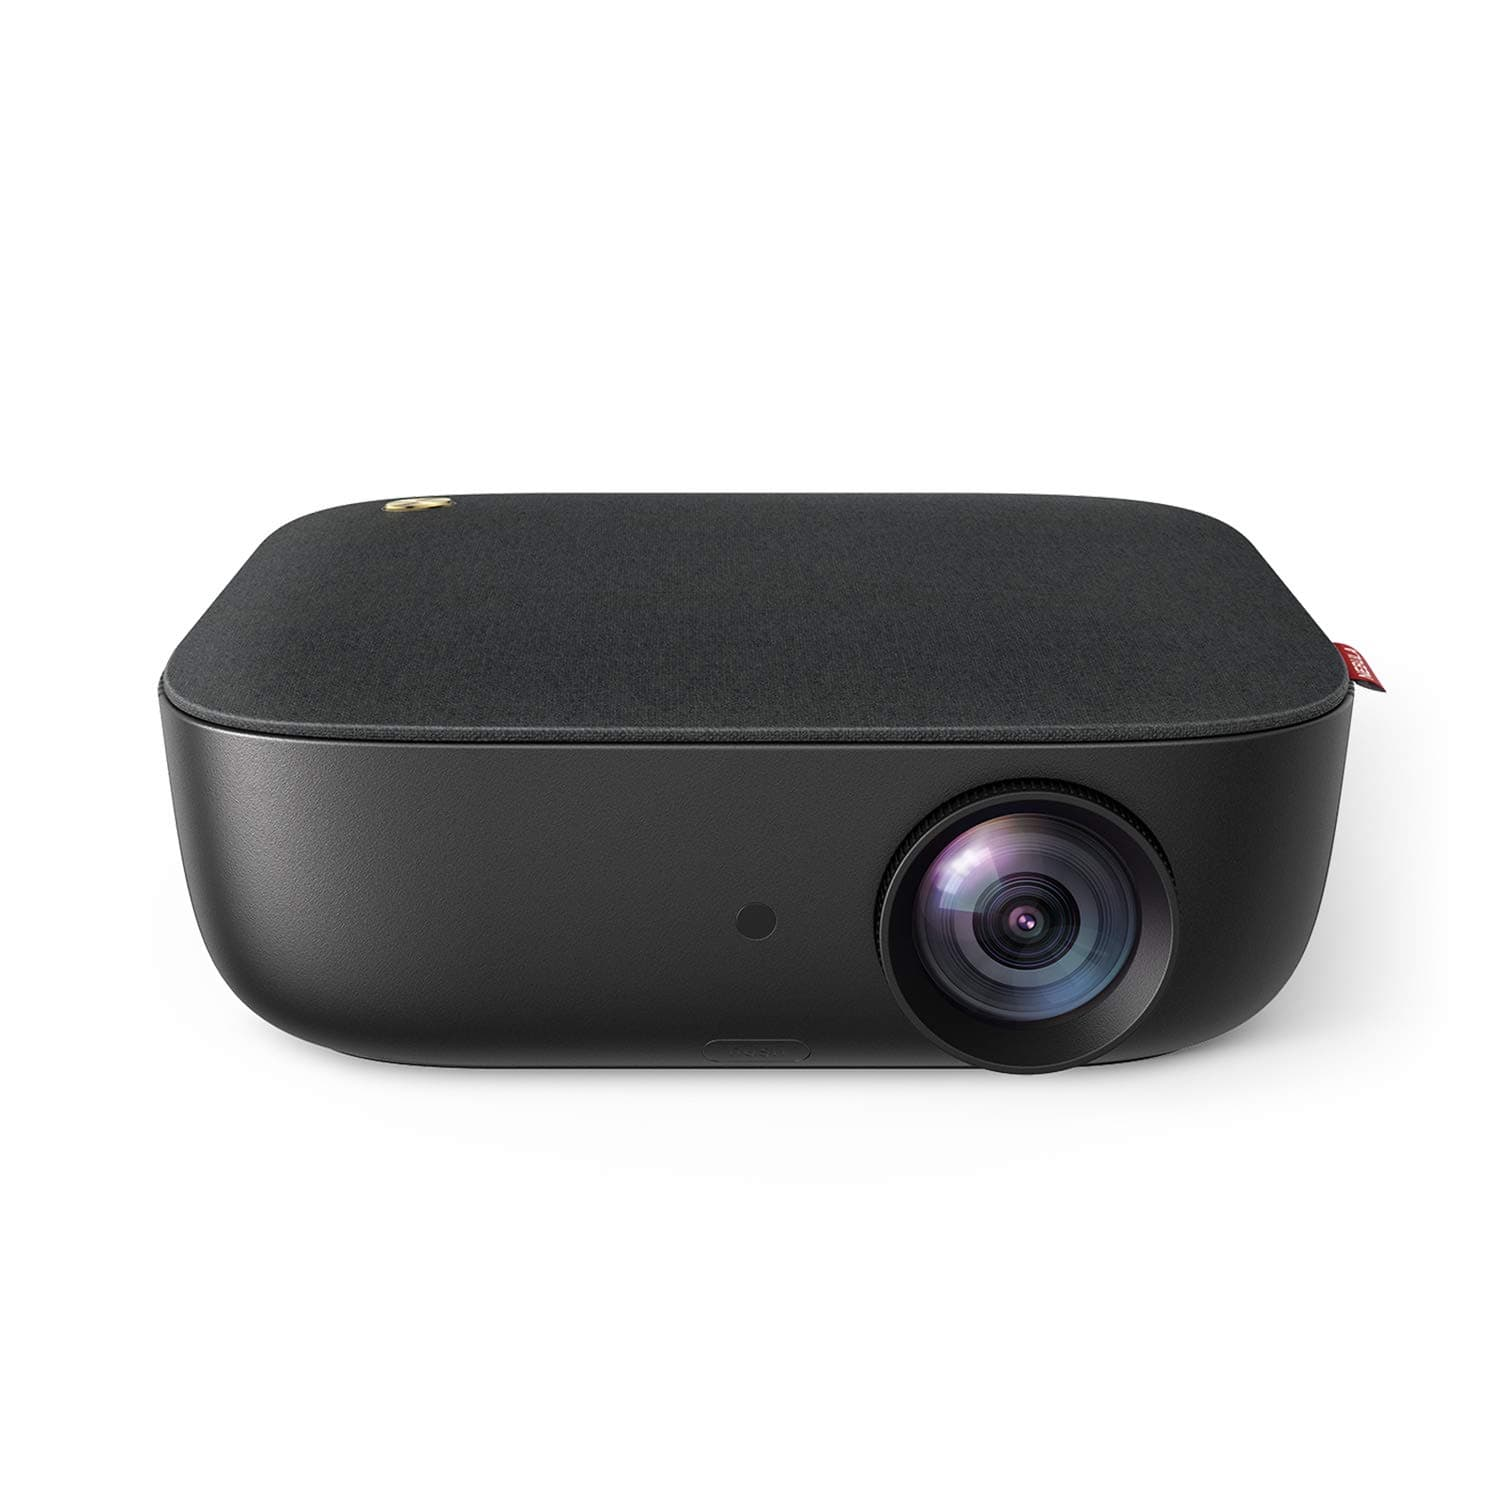 Nebula by Anker Prizm II 200 ANSI Lumens Full HD 1080p LED Multimedia Projector, 40 to 120 Inch Image Movie Projector  $145 AC. Amazon.com